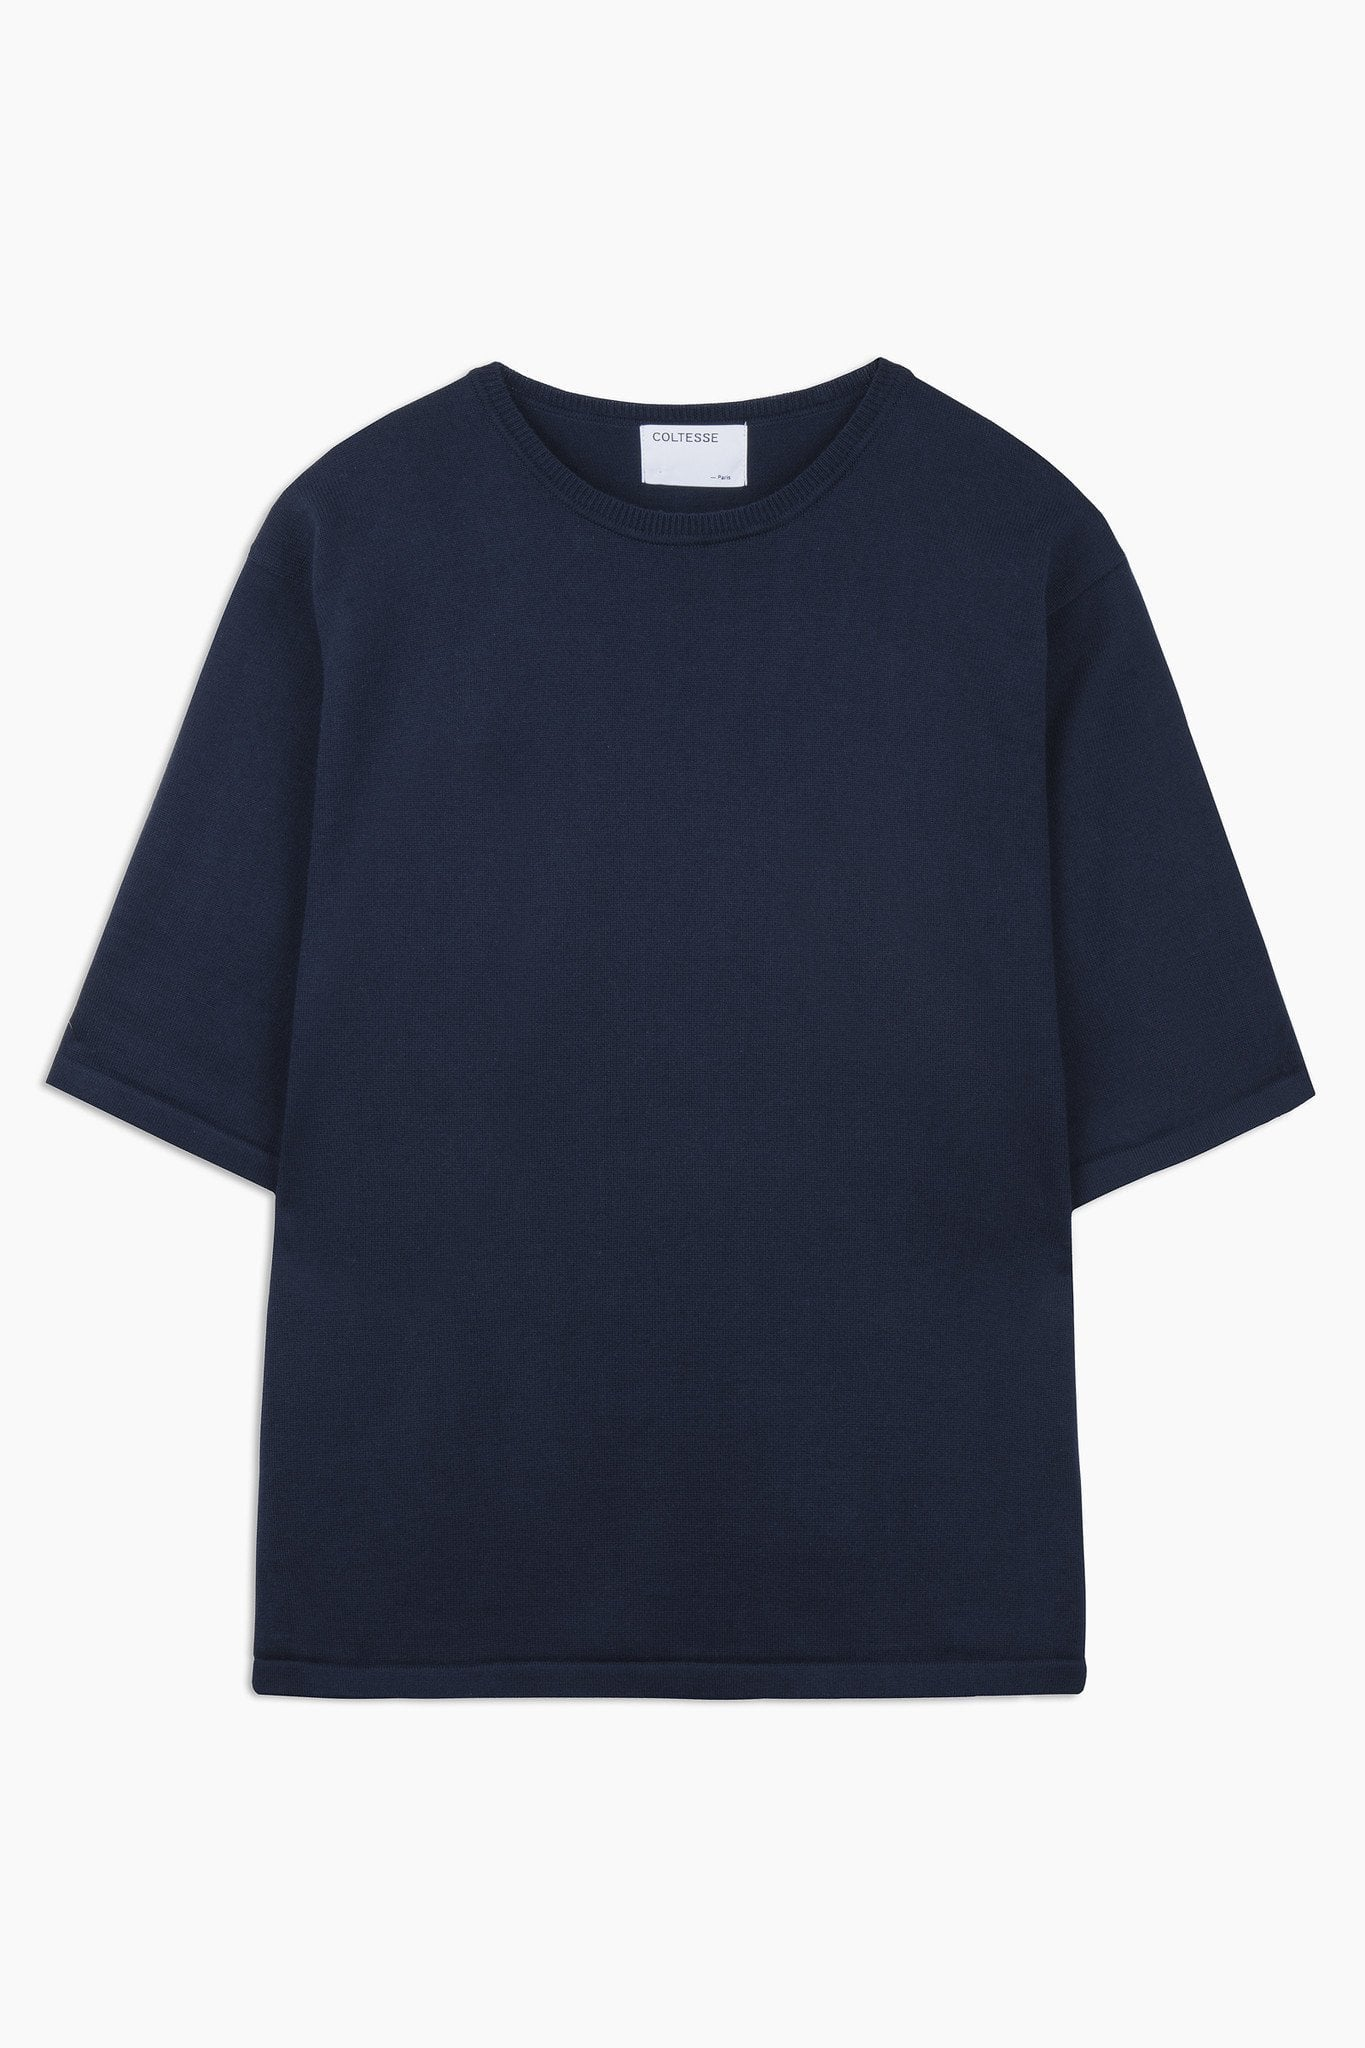 Knit tee Jabal – dark navy